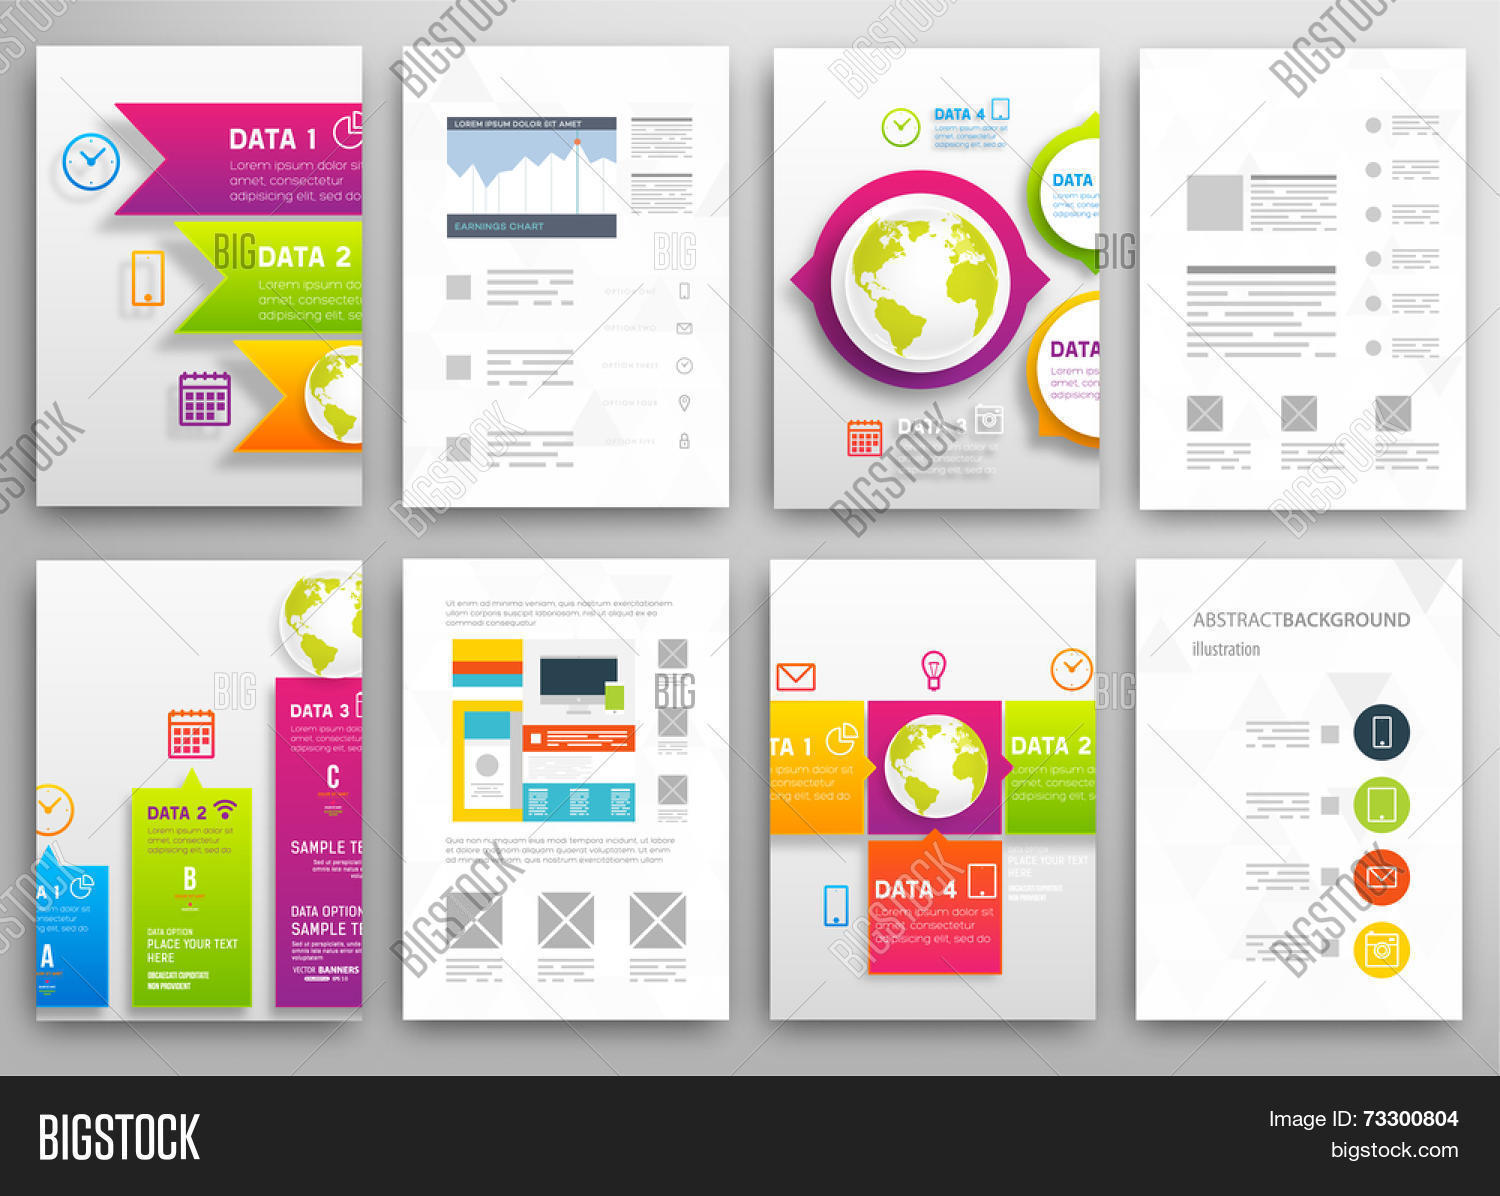 How To Design A Brochure Free Online